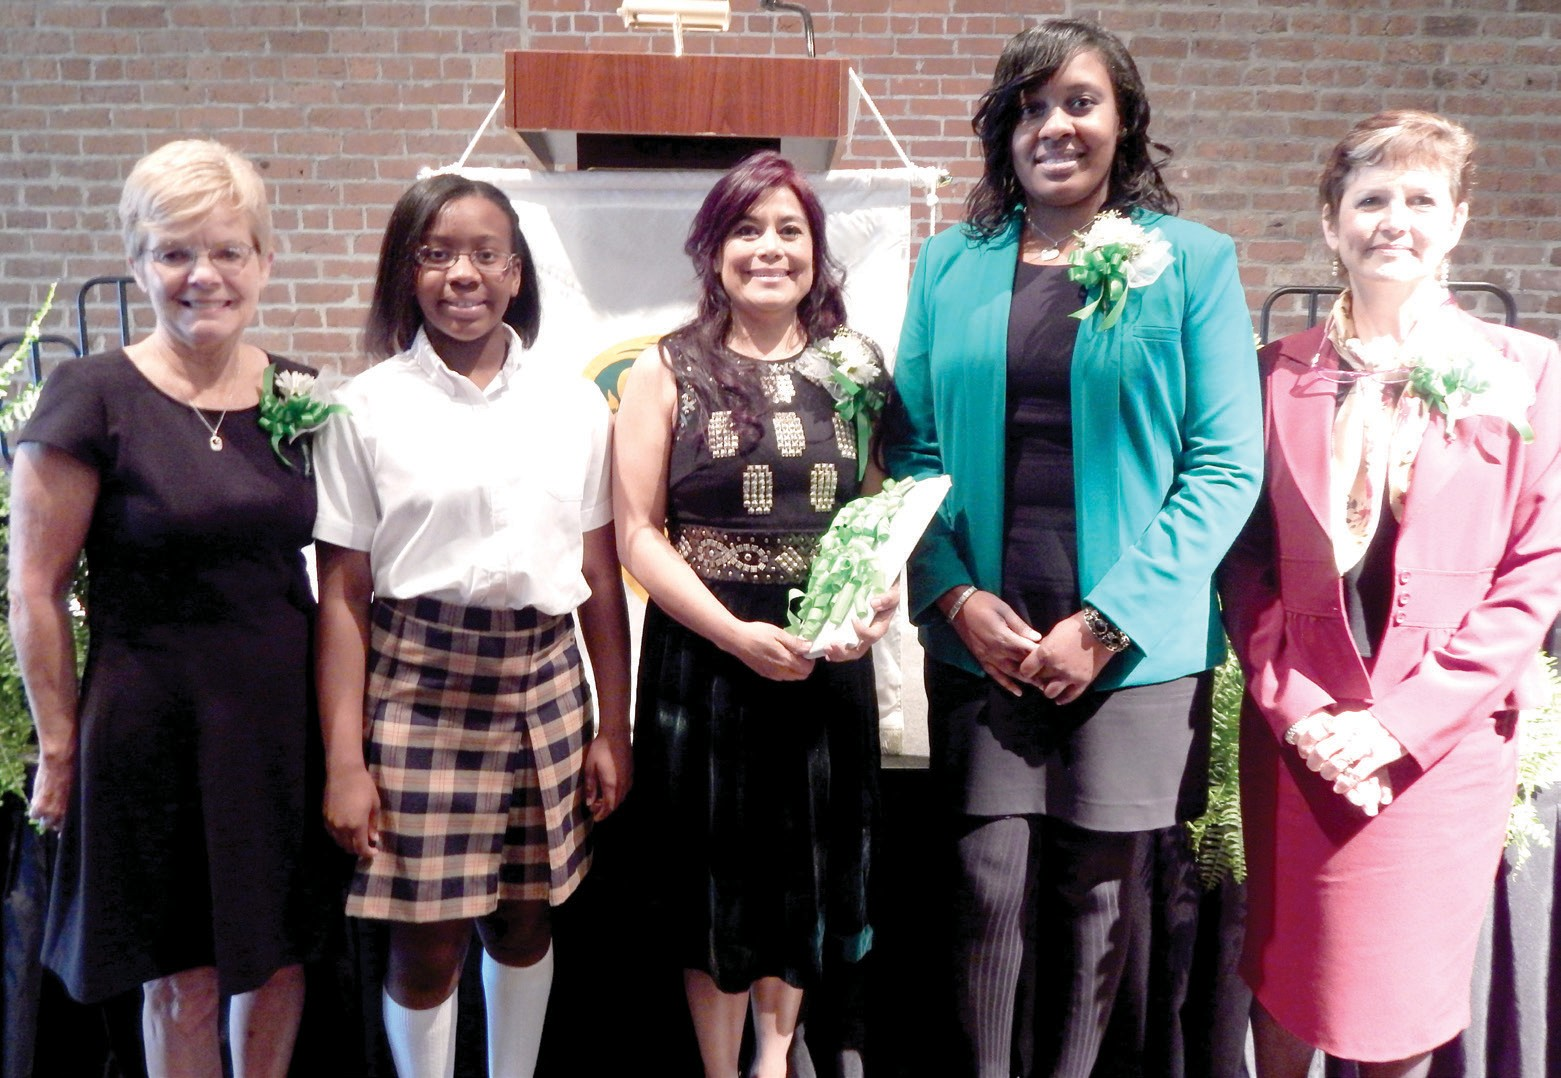 (L-R) Sherry Feathers; Candace Hill, who accepted the award for her mother, Cathy Hill; Dr. Miriam Rittmeyer; Katherine Argrow Cummings; and The Honorable Louisa Abbot